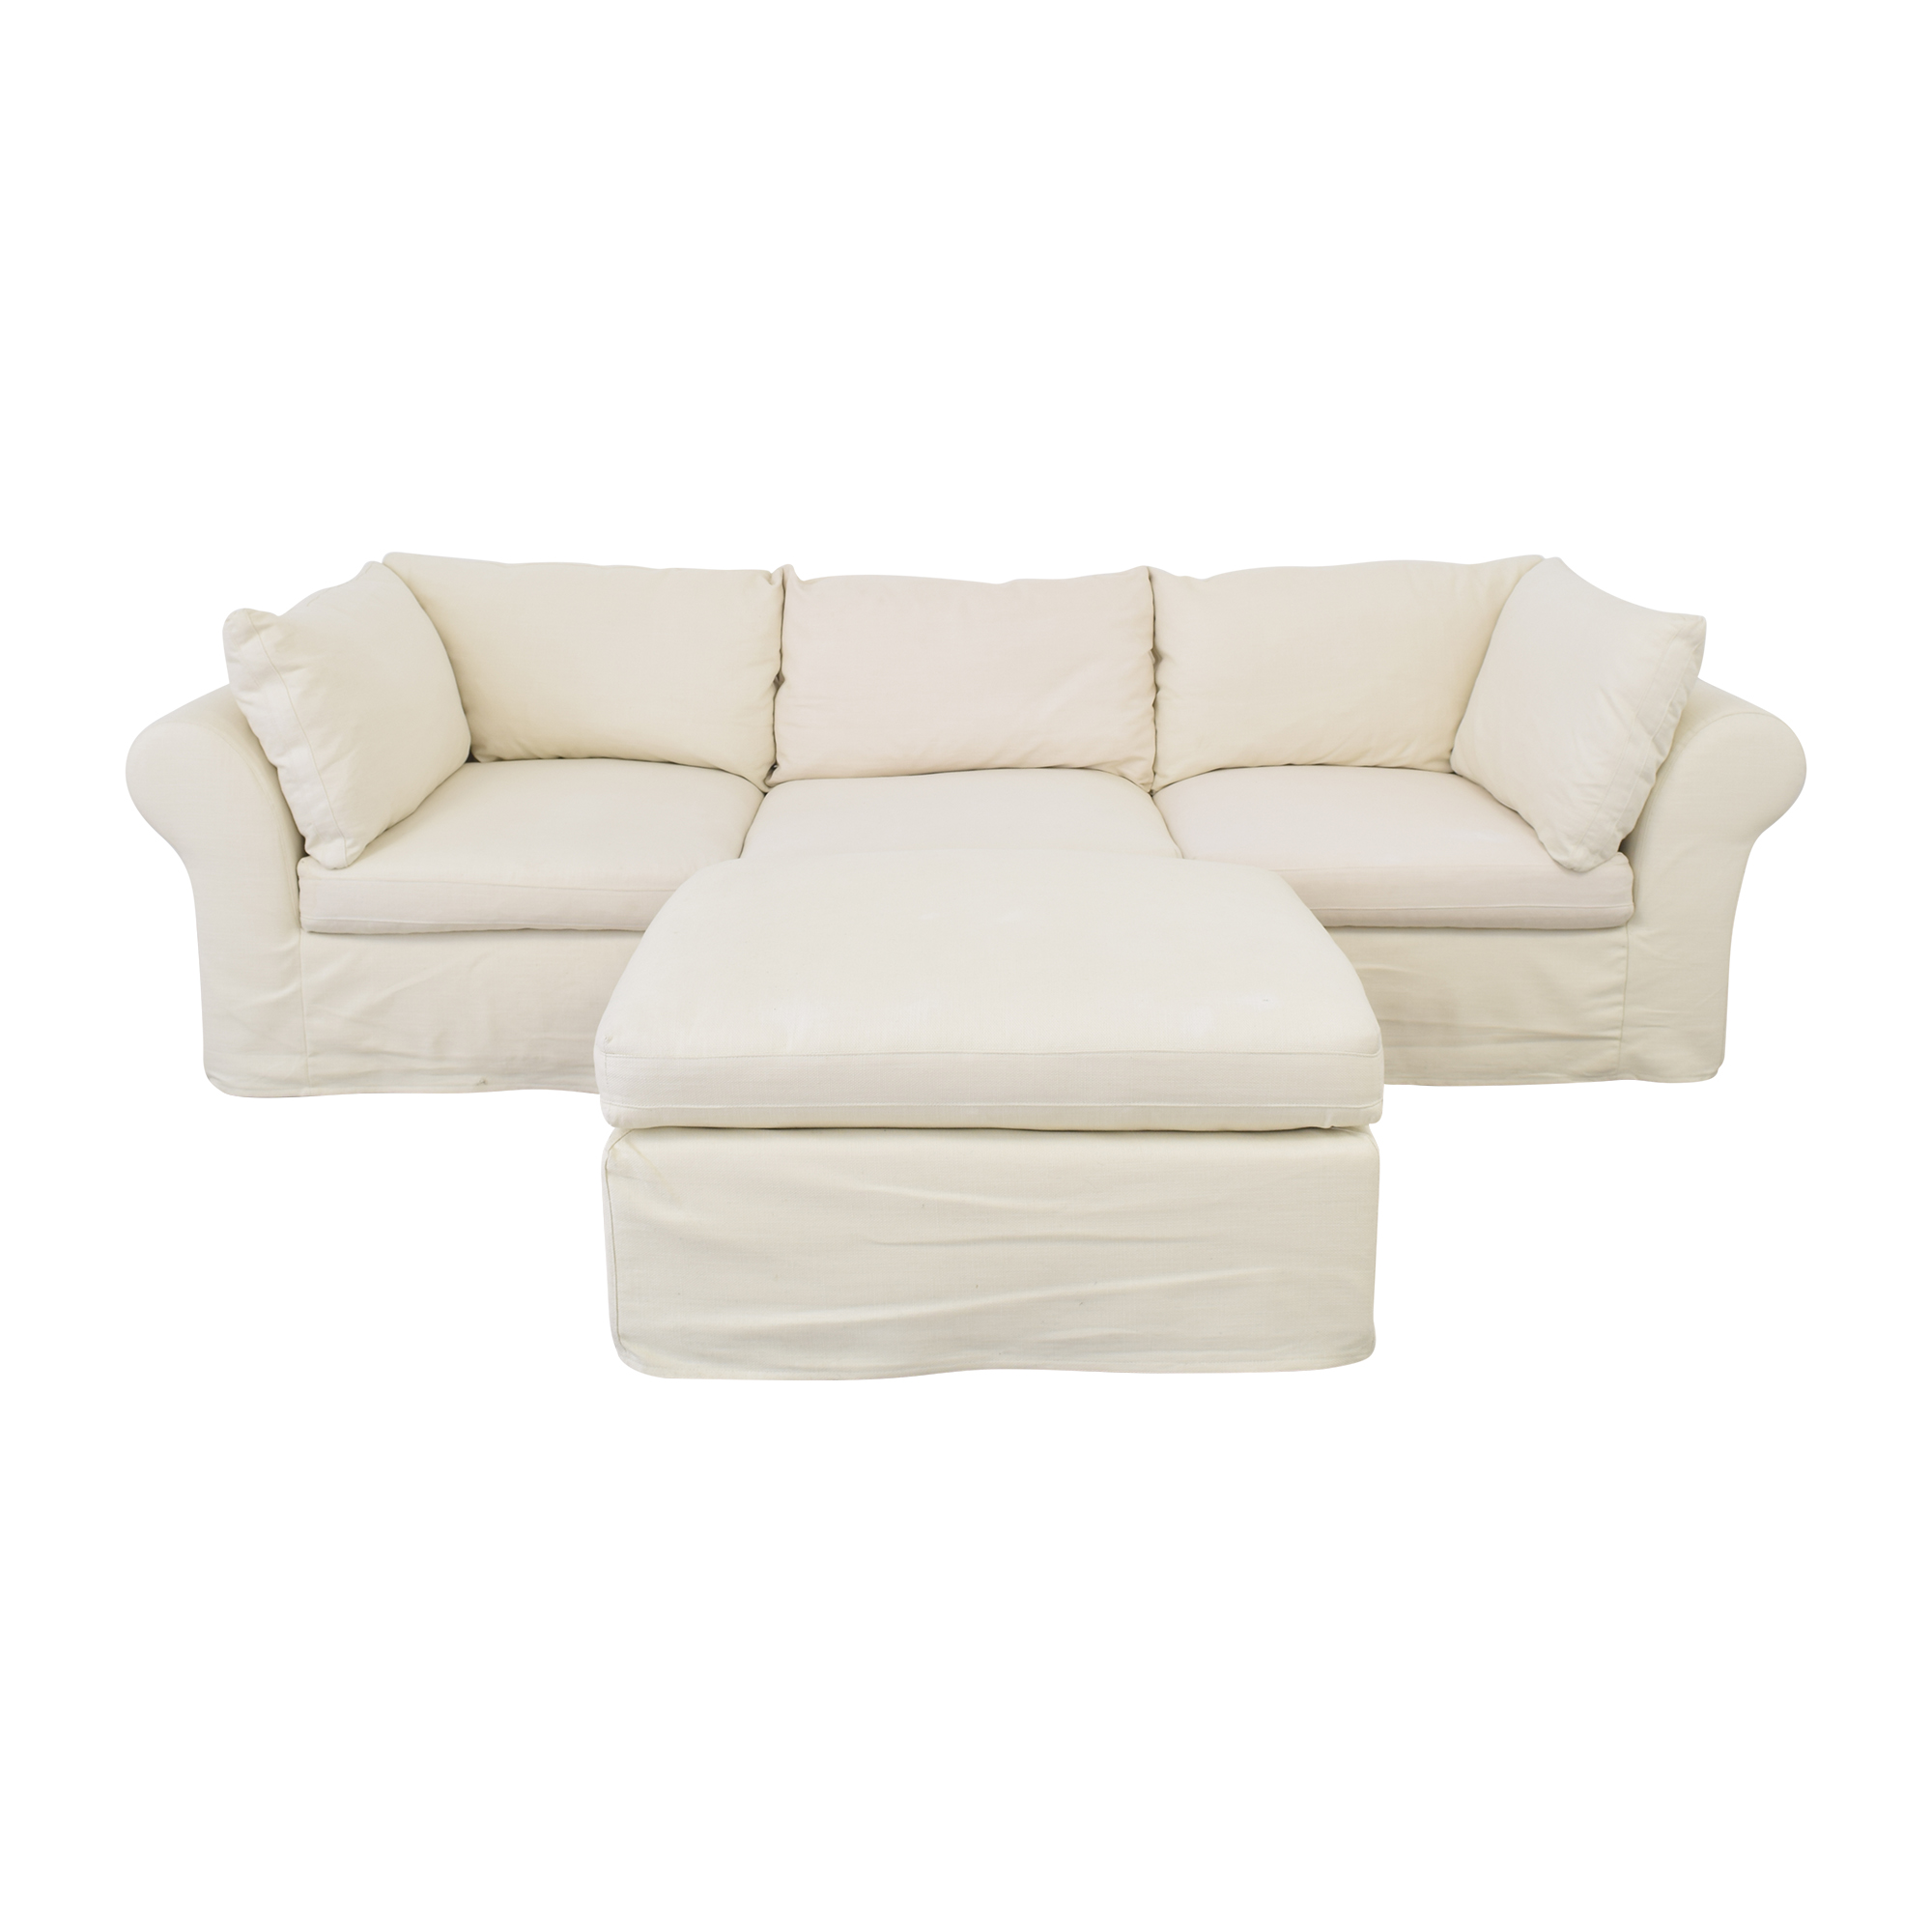 Pottery Barn Pottery Barn Roll Arm Sectional Sofa with Ottoman second hand